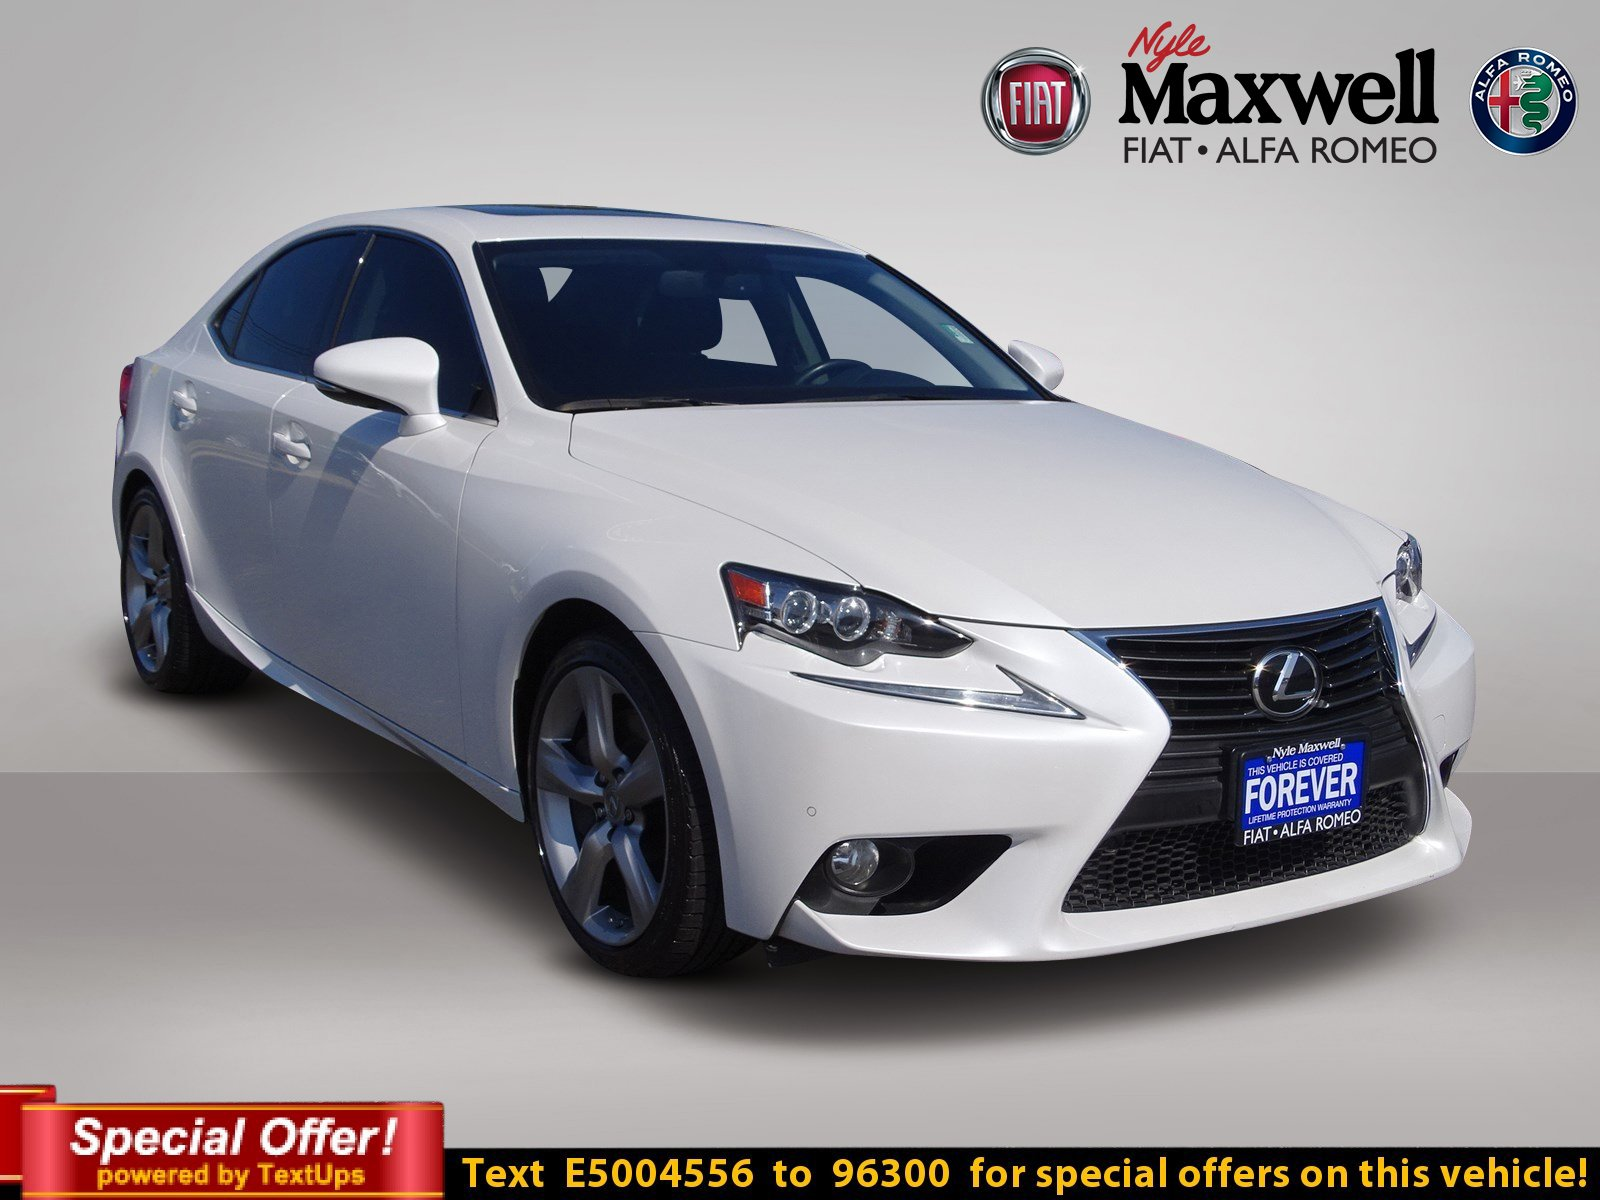 Pre Owned 2014 Lexus IS 350 4dr Car in Taylor E